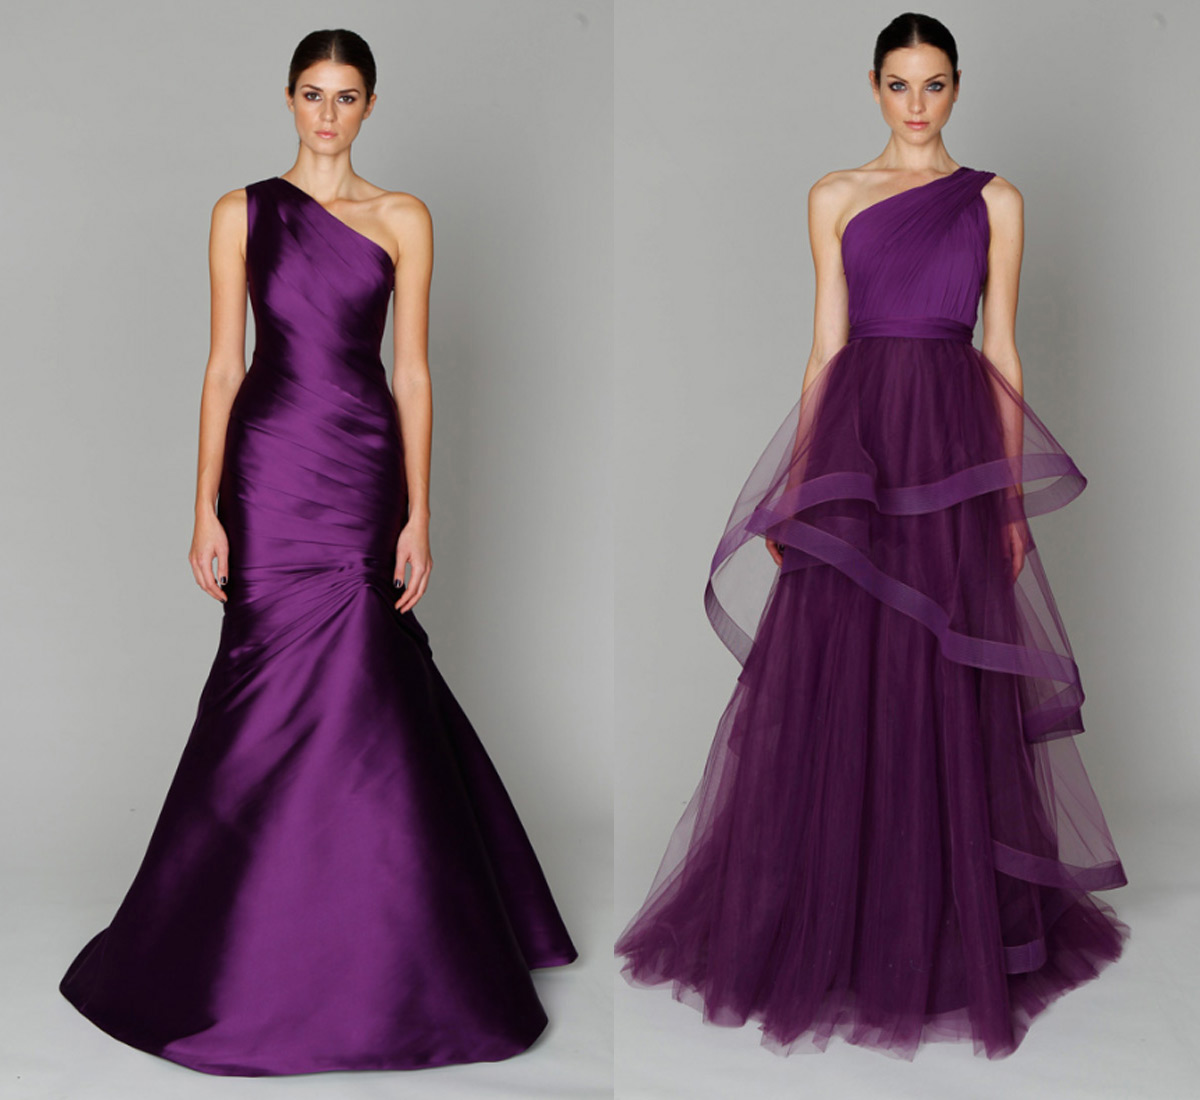 Rainingblossoms Evening Dresses Choosing Glamorous Purple